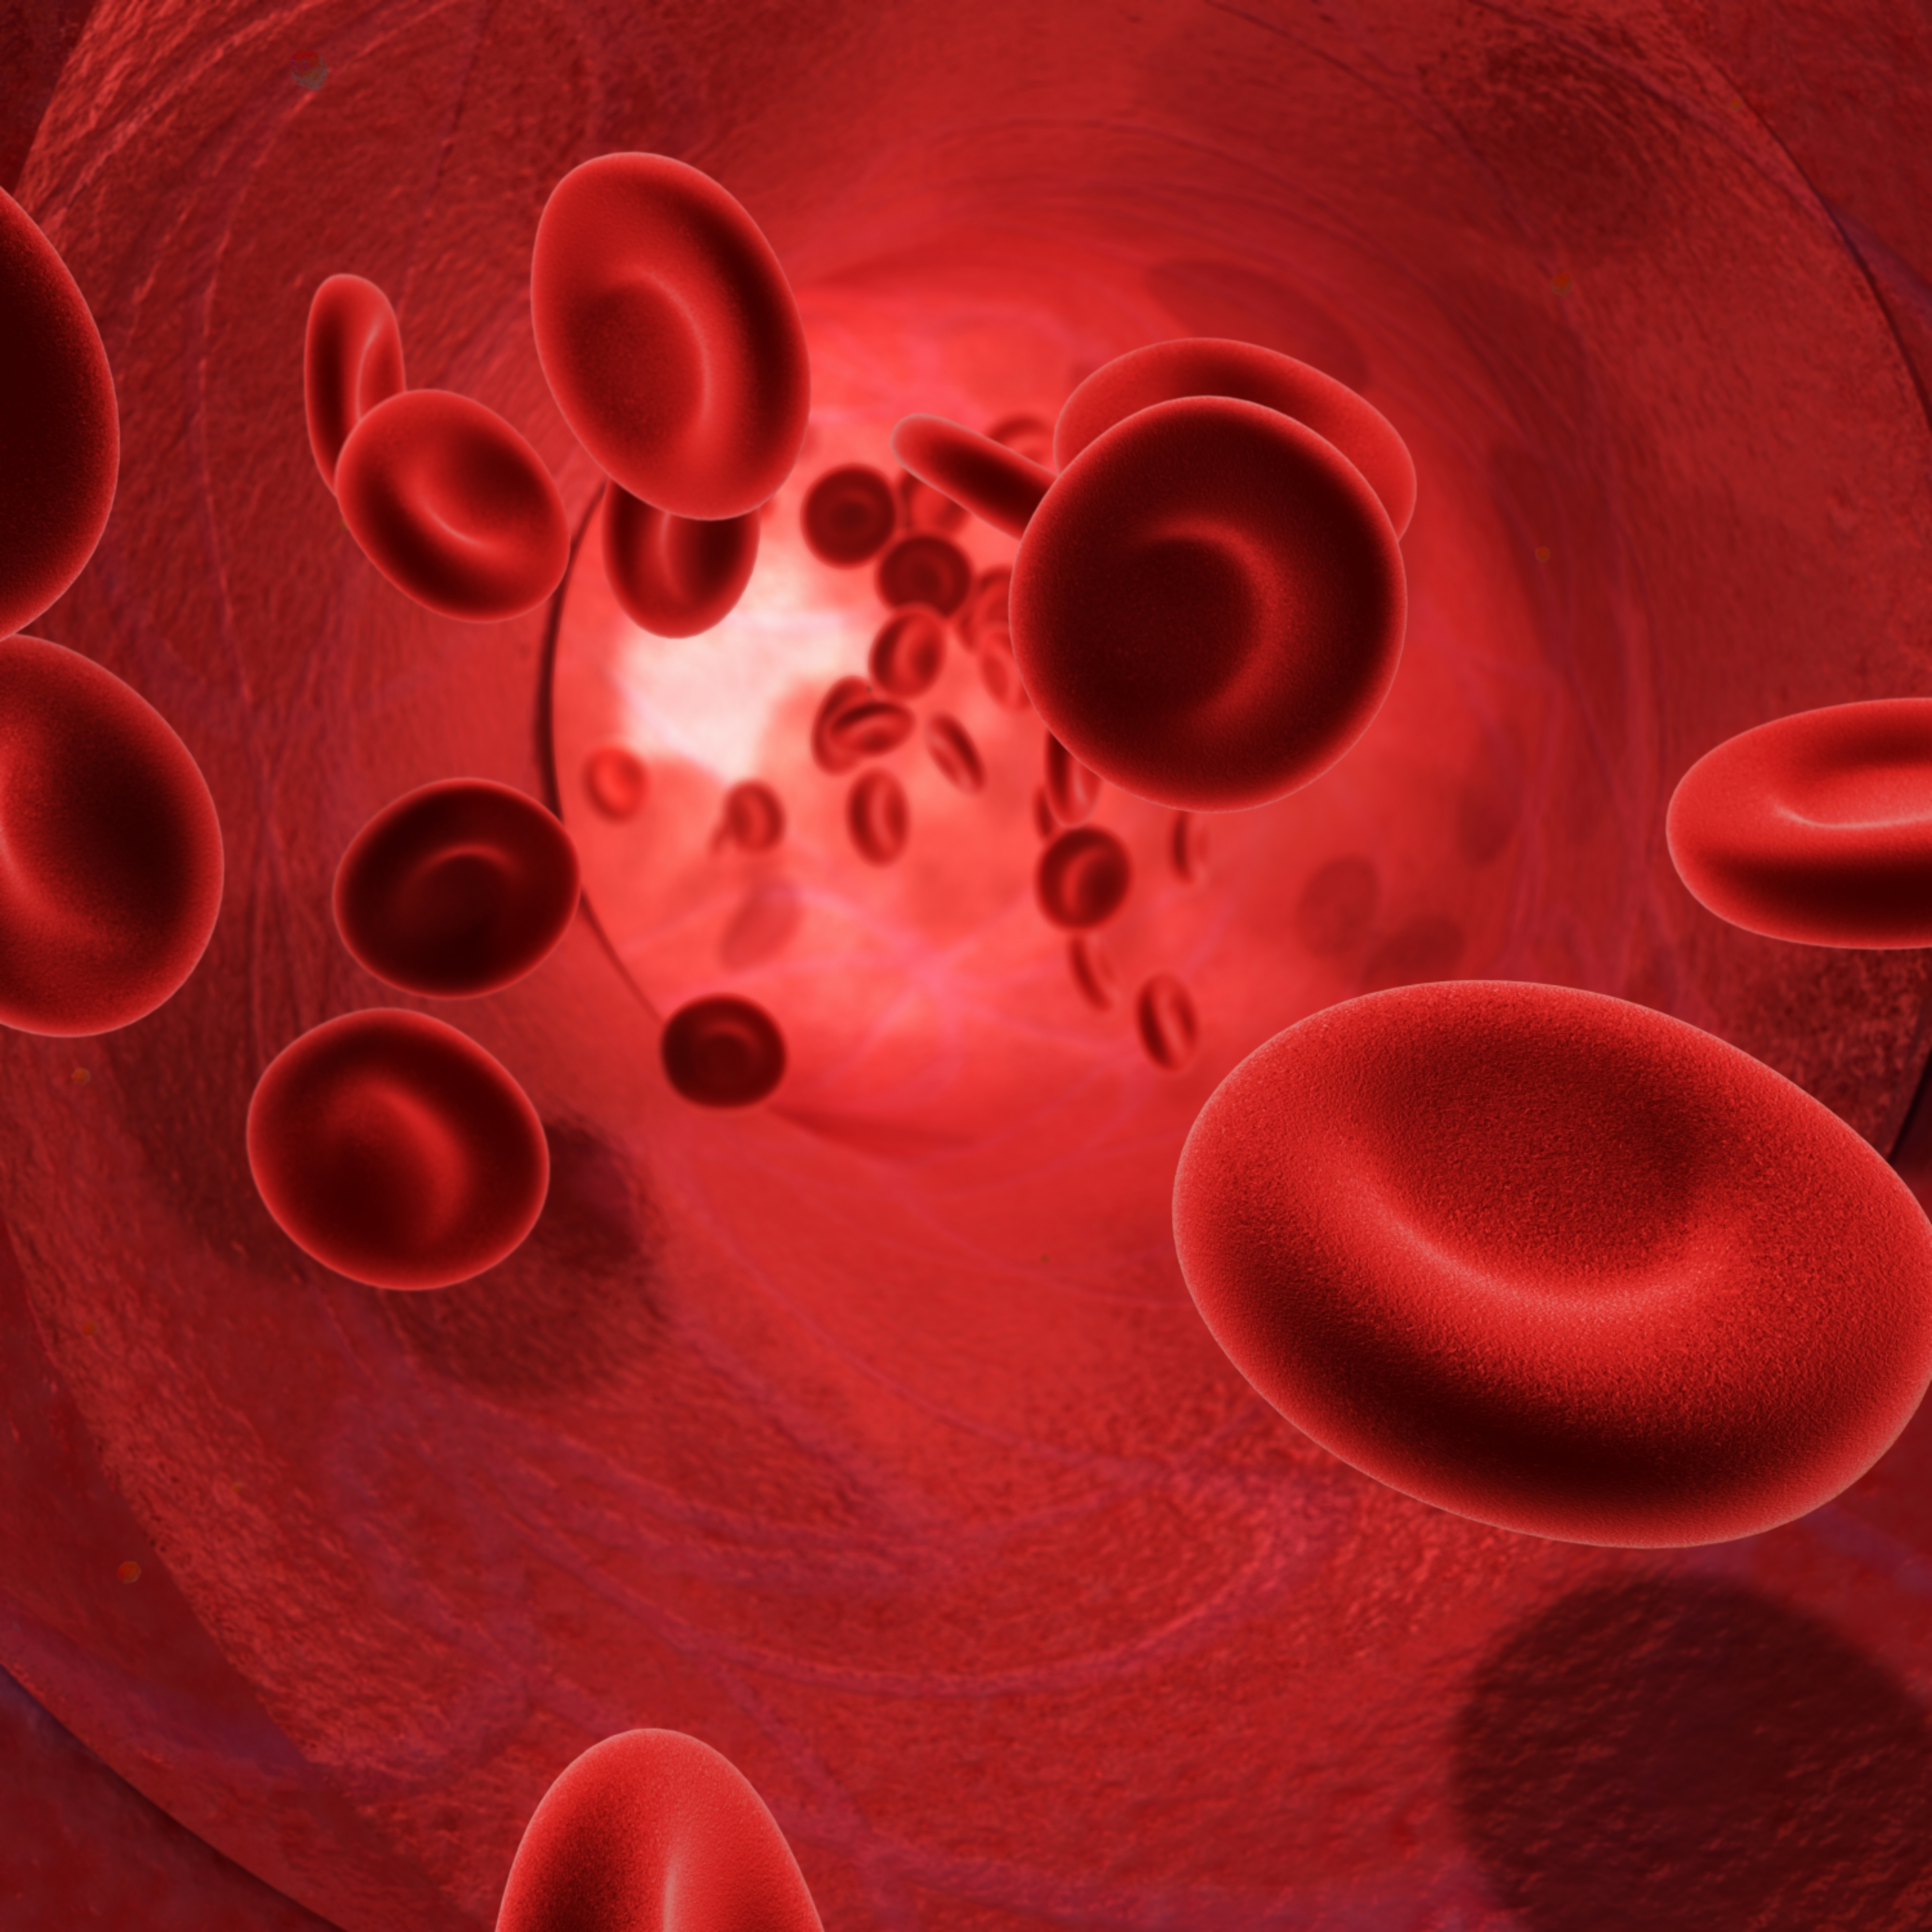 3d image of the flow of blood inside an artery